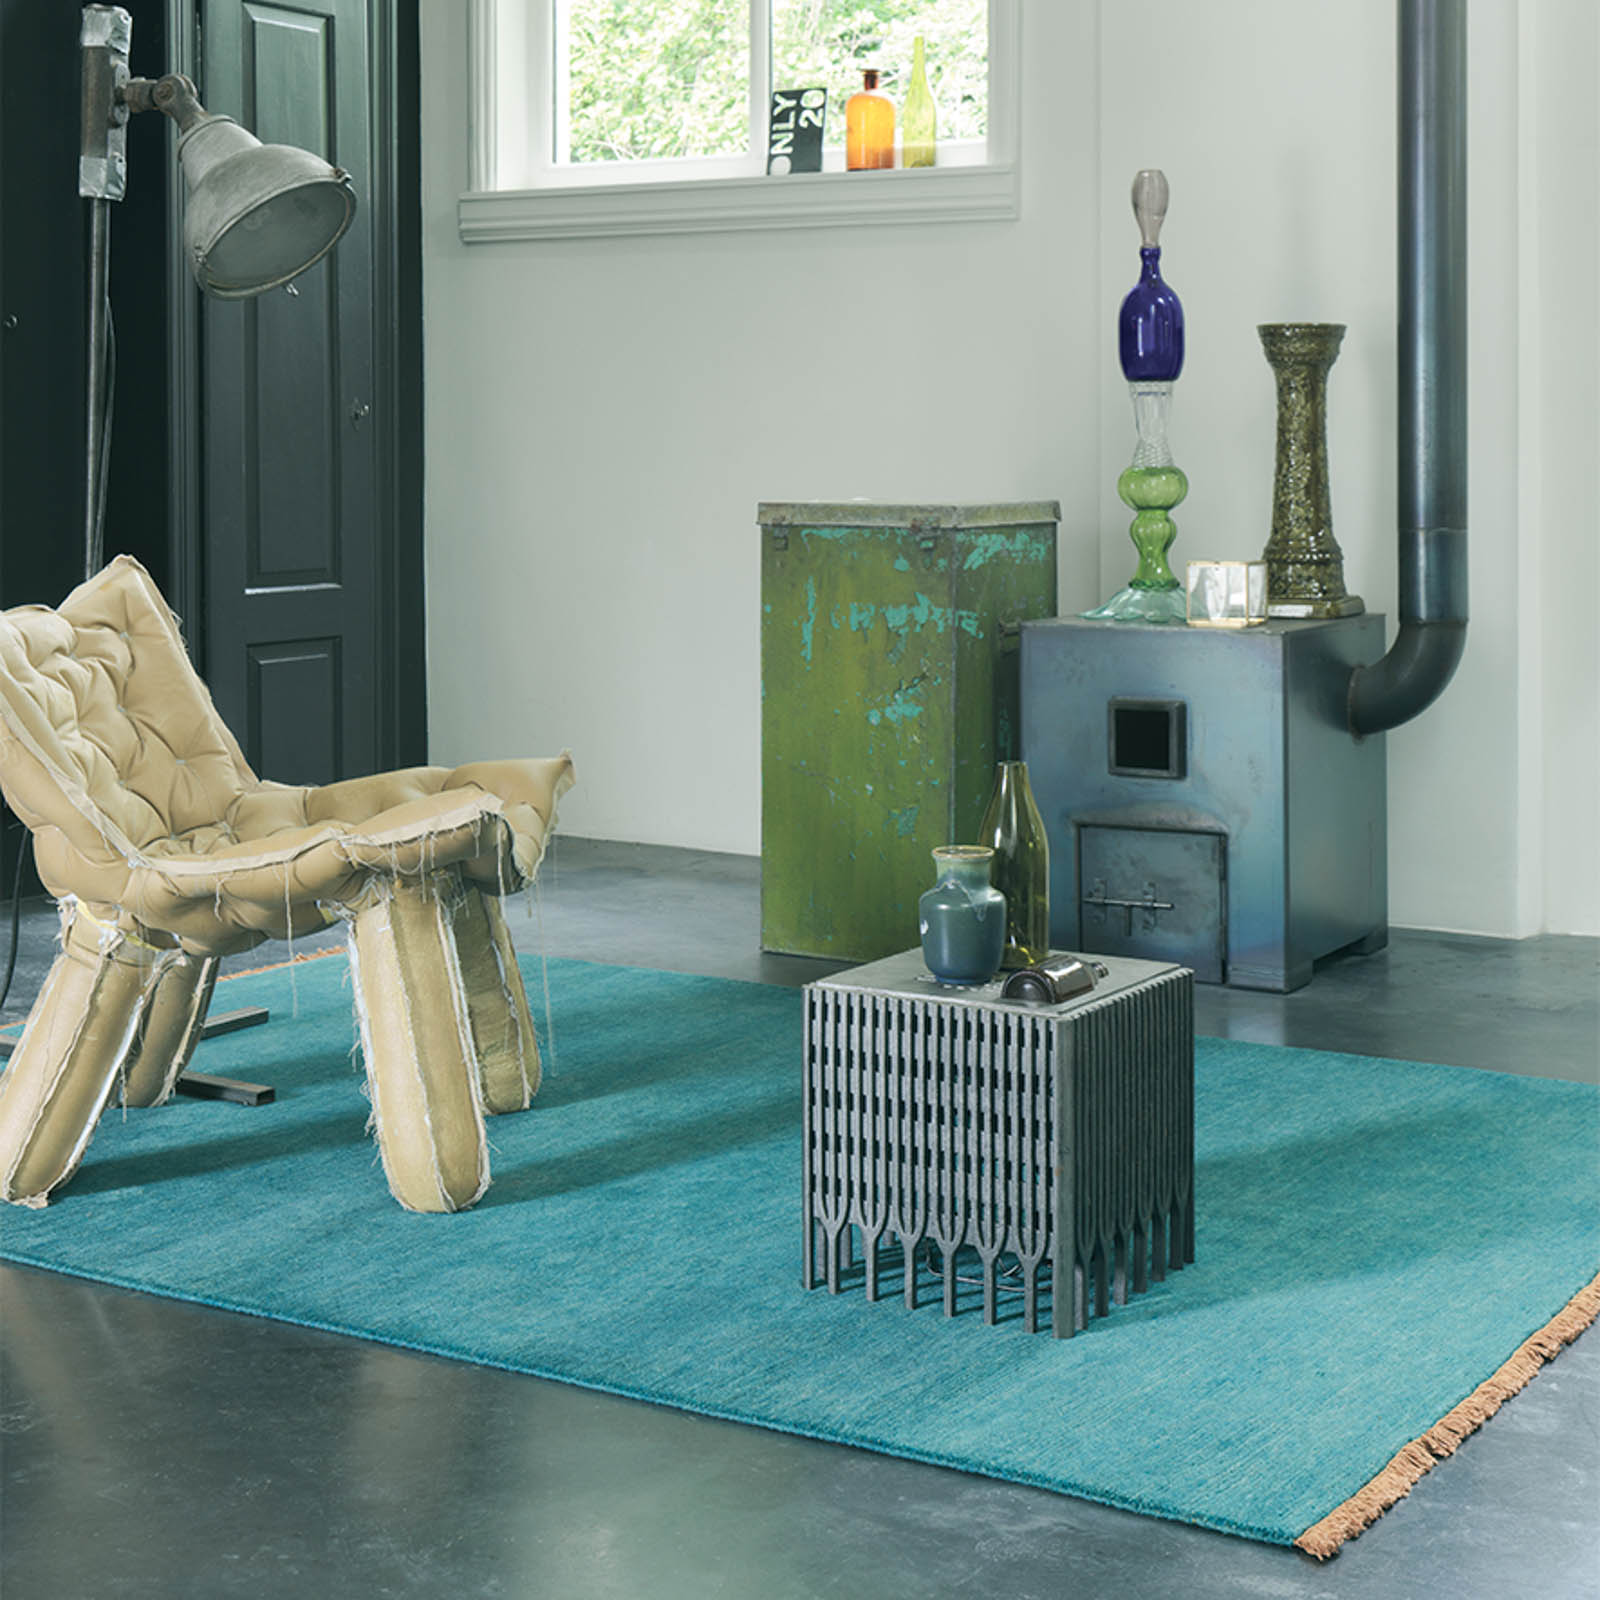 a blue nima rug in a large room with a chair, table and other furniture accents